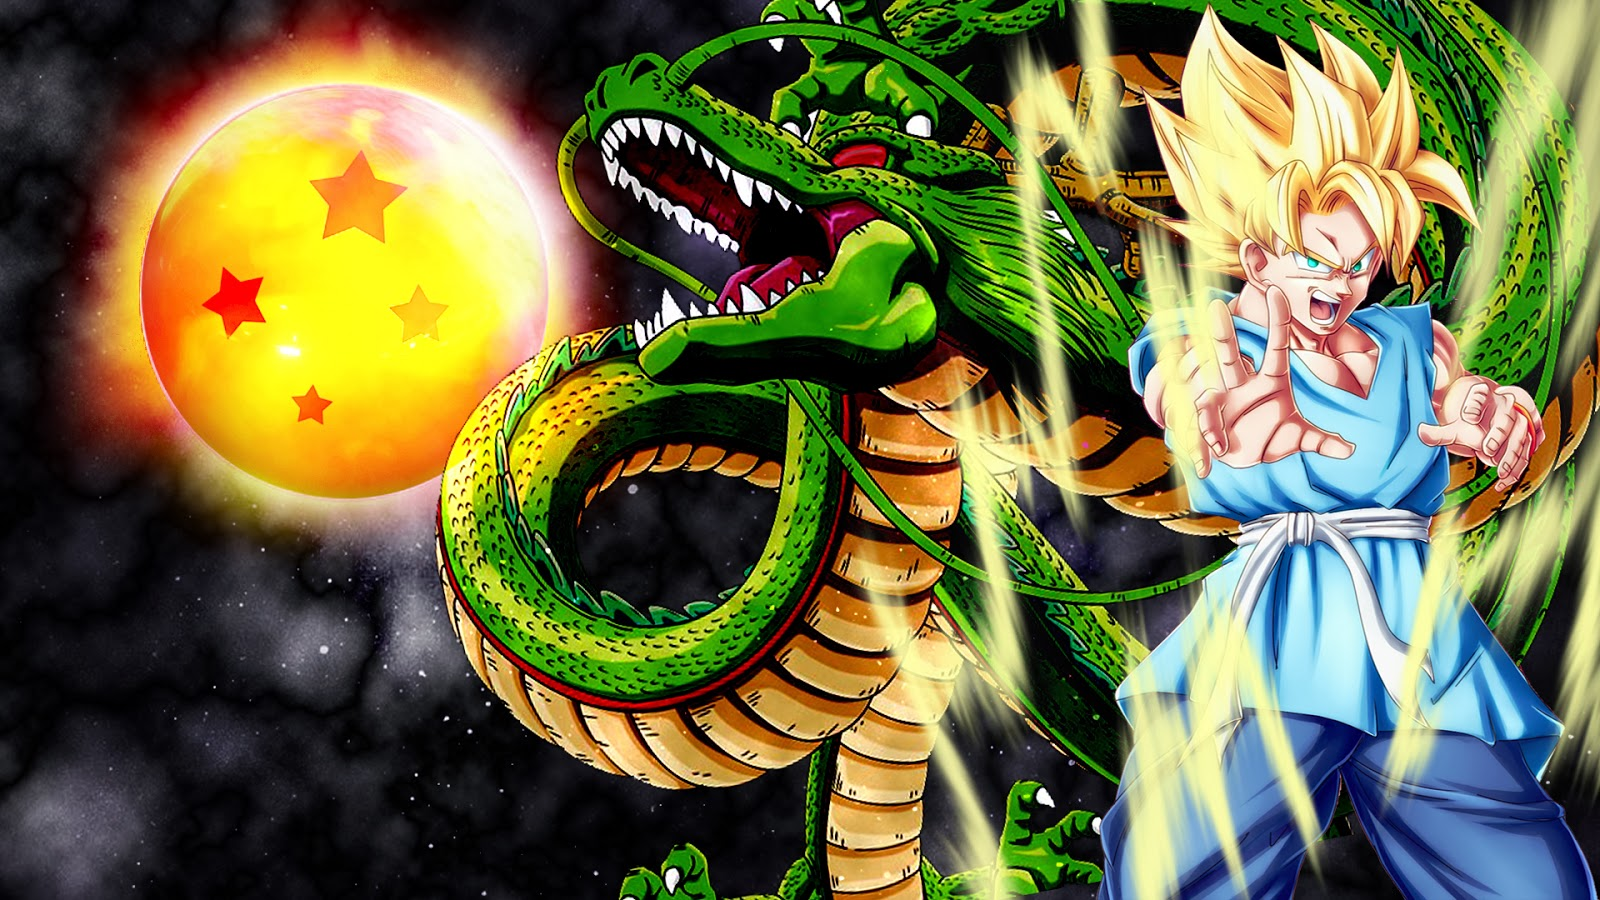 Download Dragon Ball Songoku Full Hd Wallpapers 3d Hd